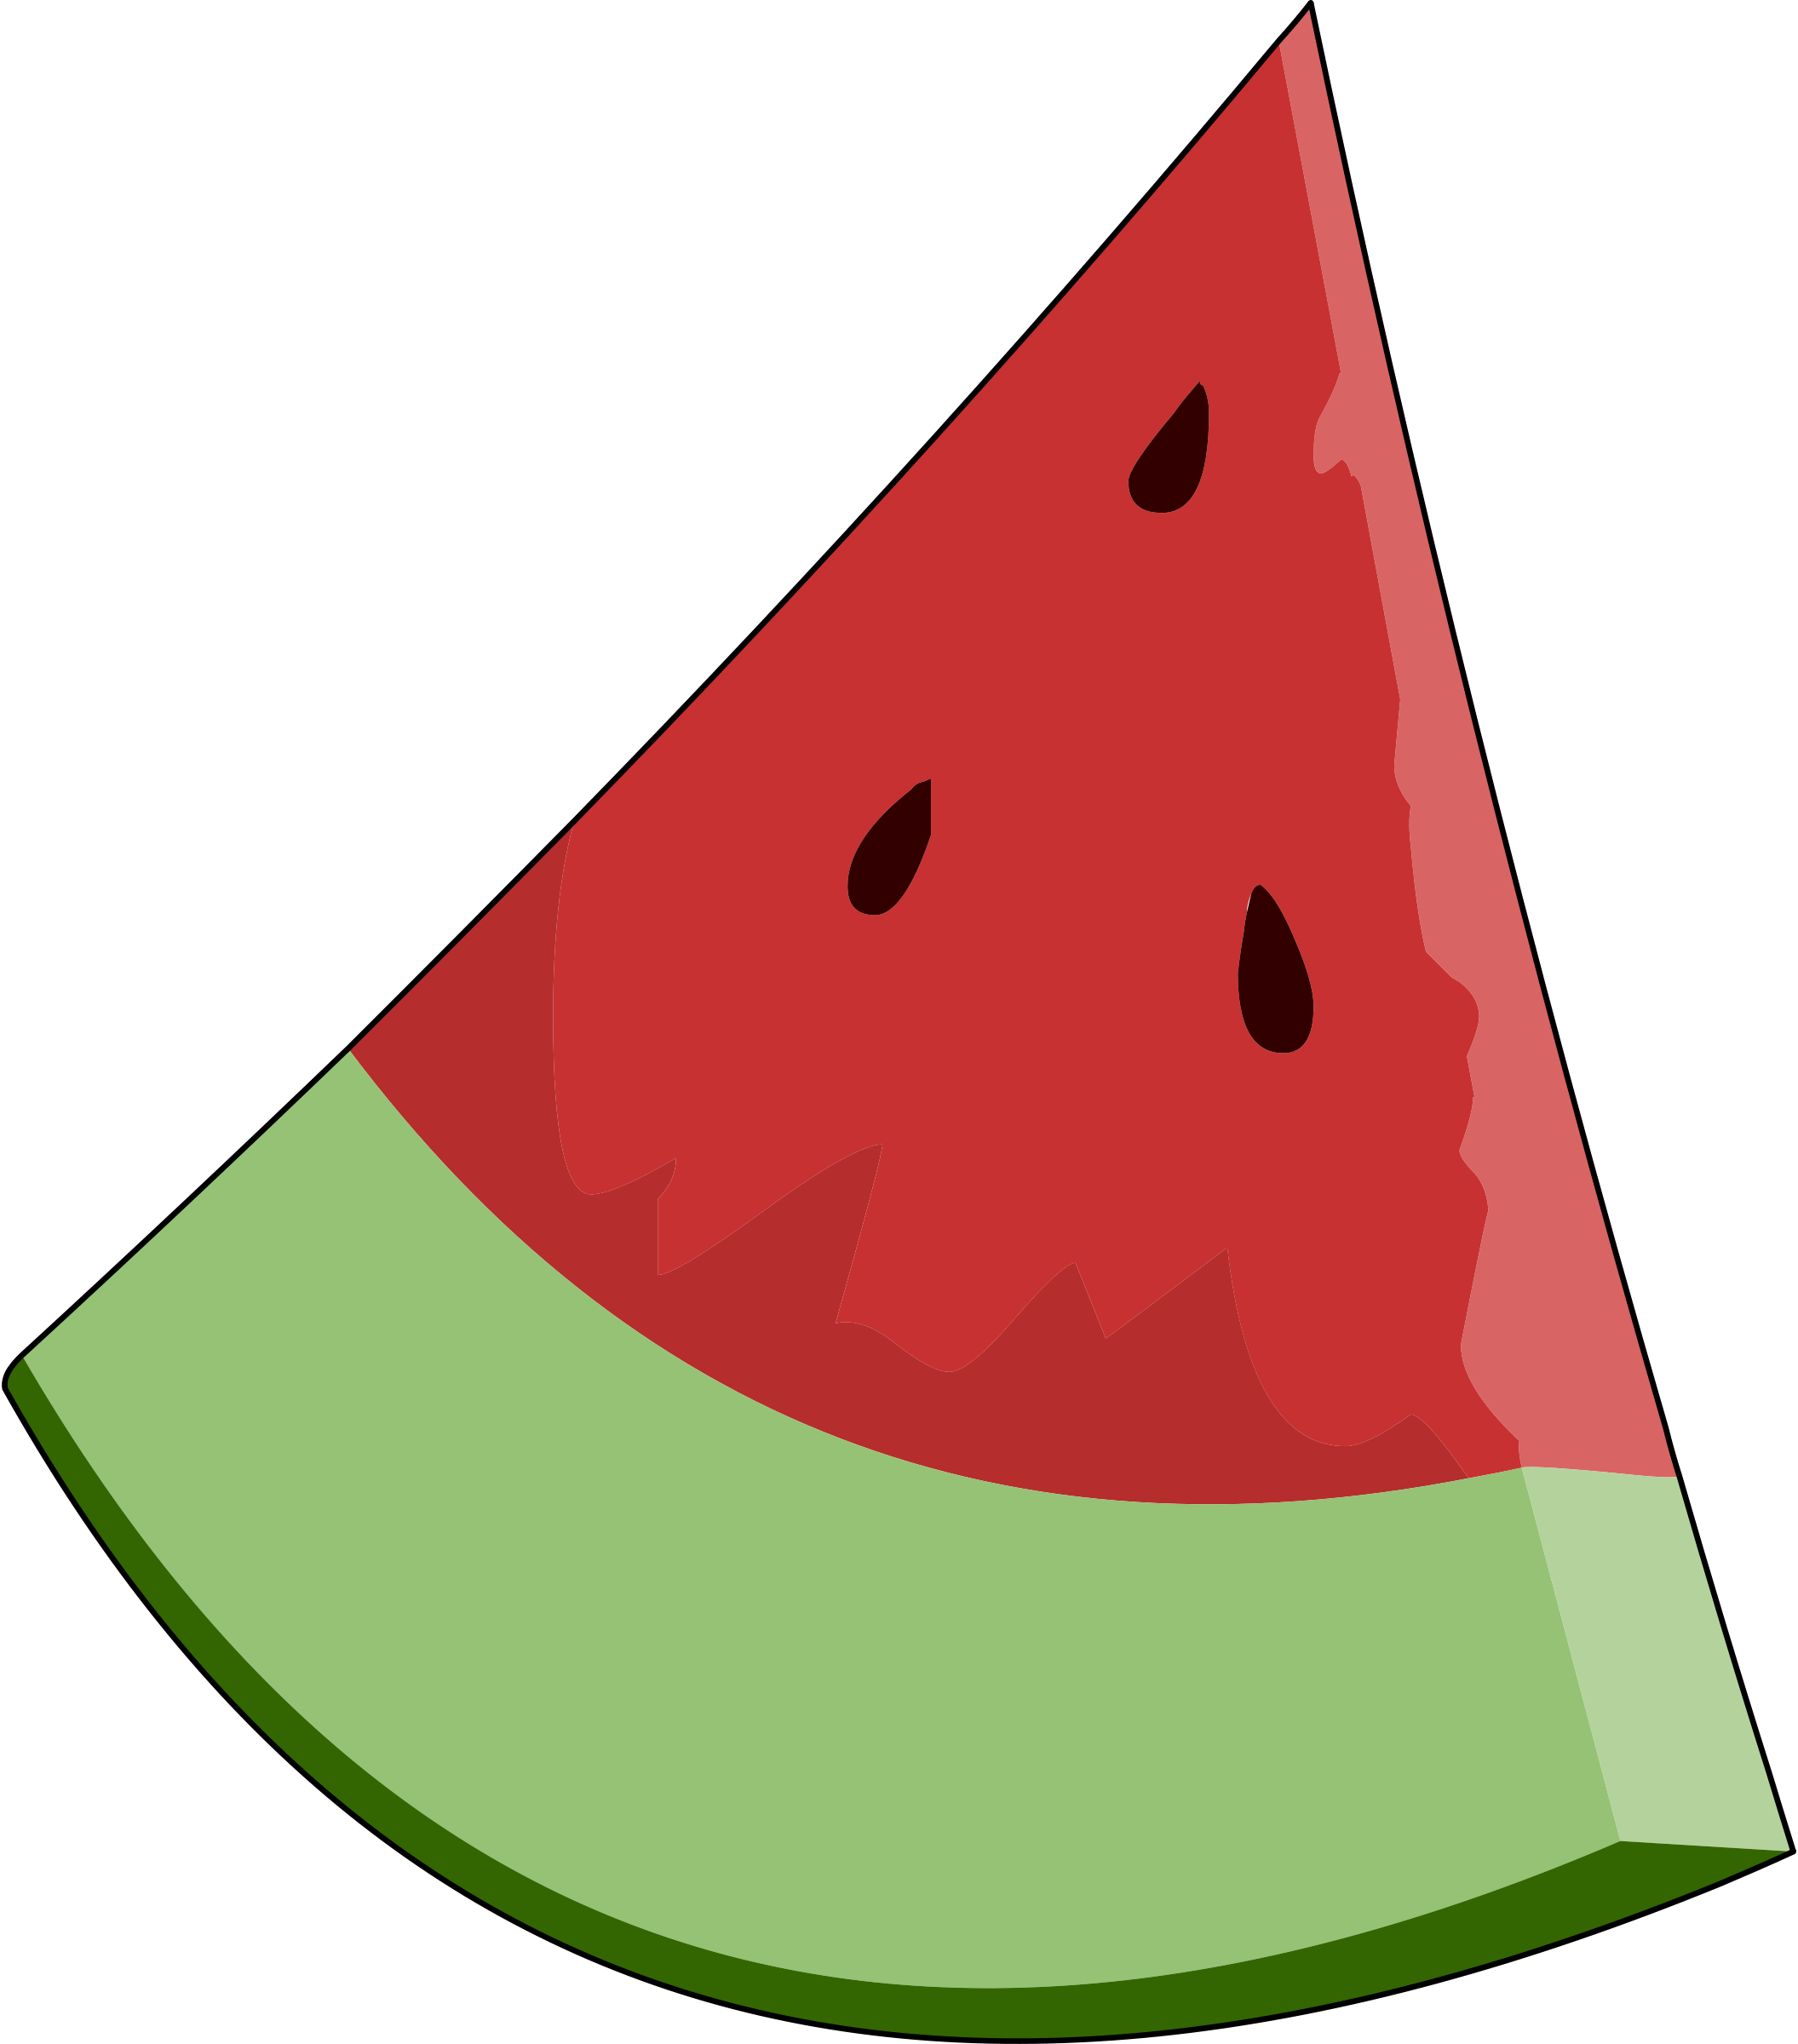 Watermelon clipart juicy watermelon. Seed free